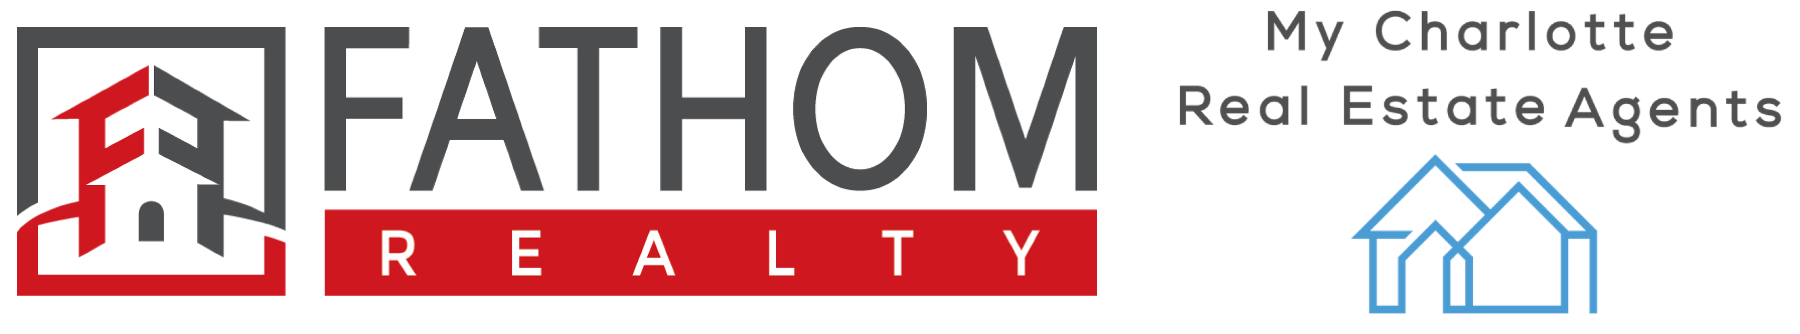 My Charlotte Real Estate Agents Powered By Fathom Realty